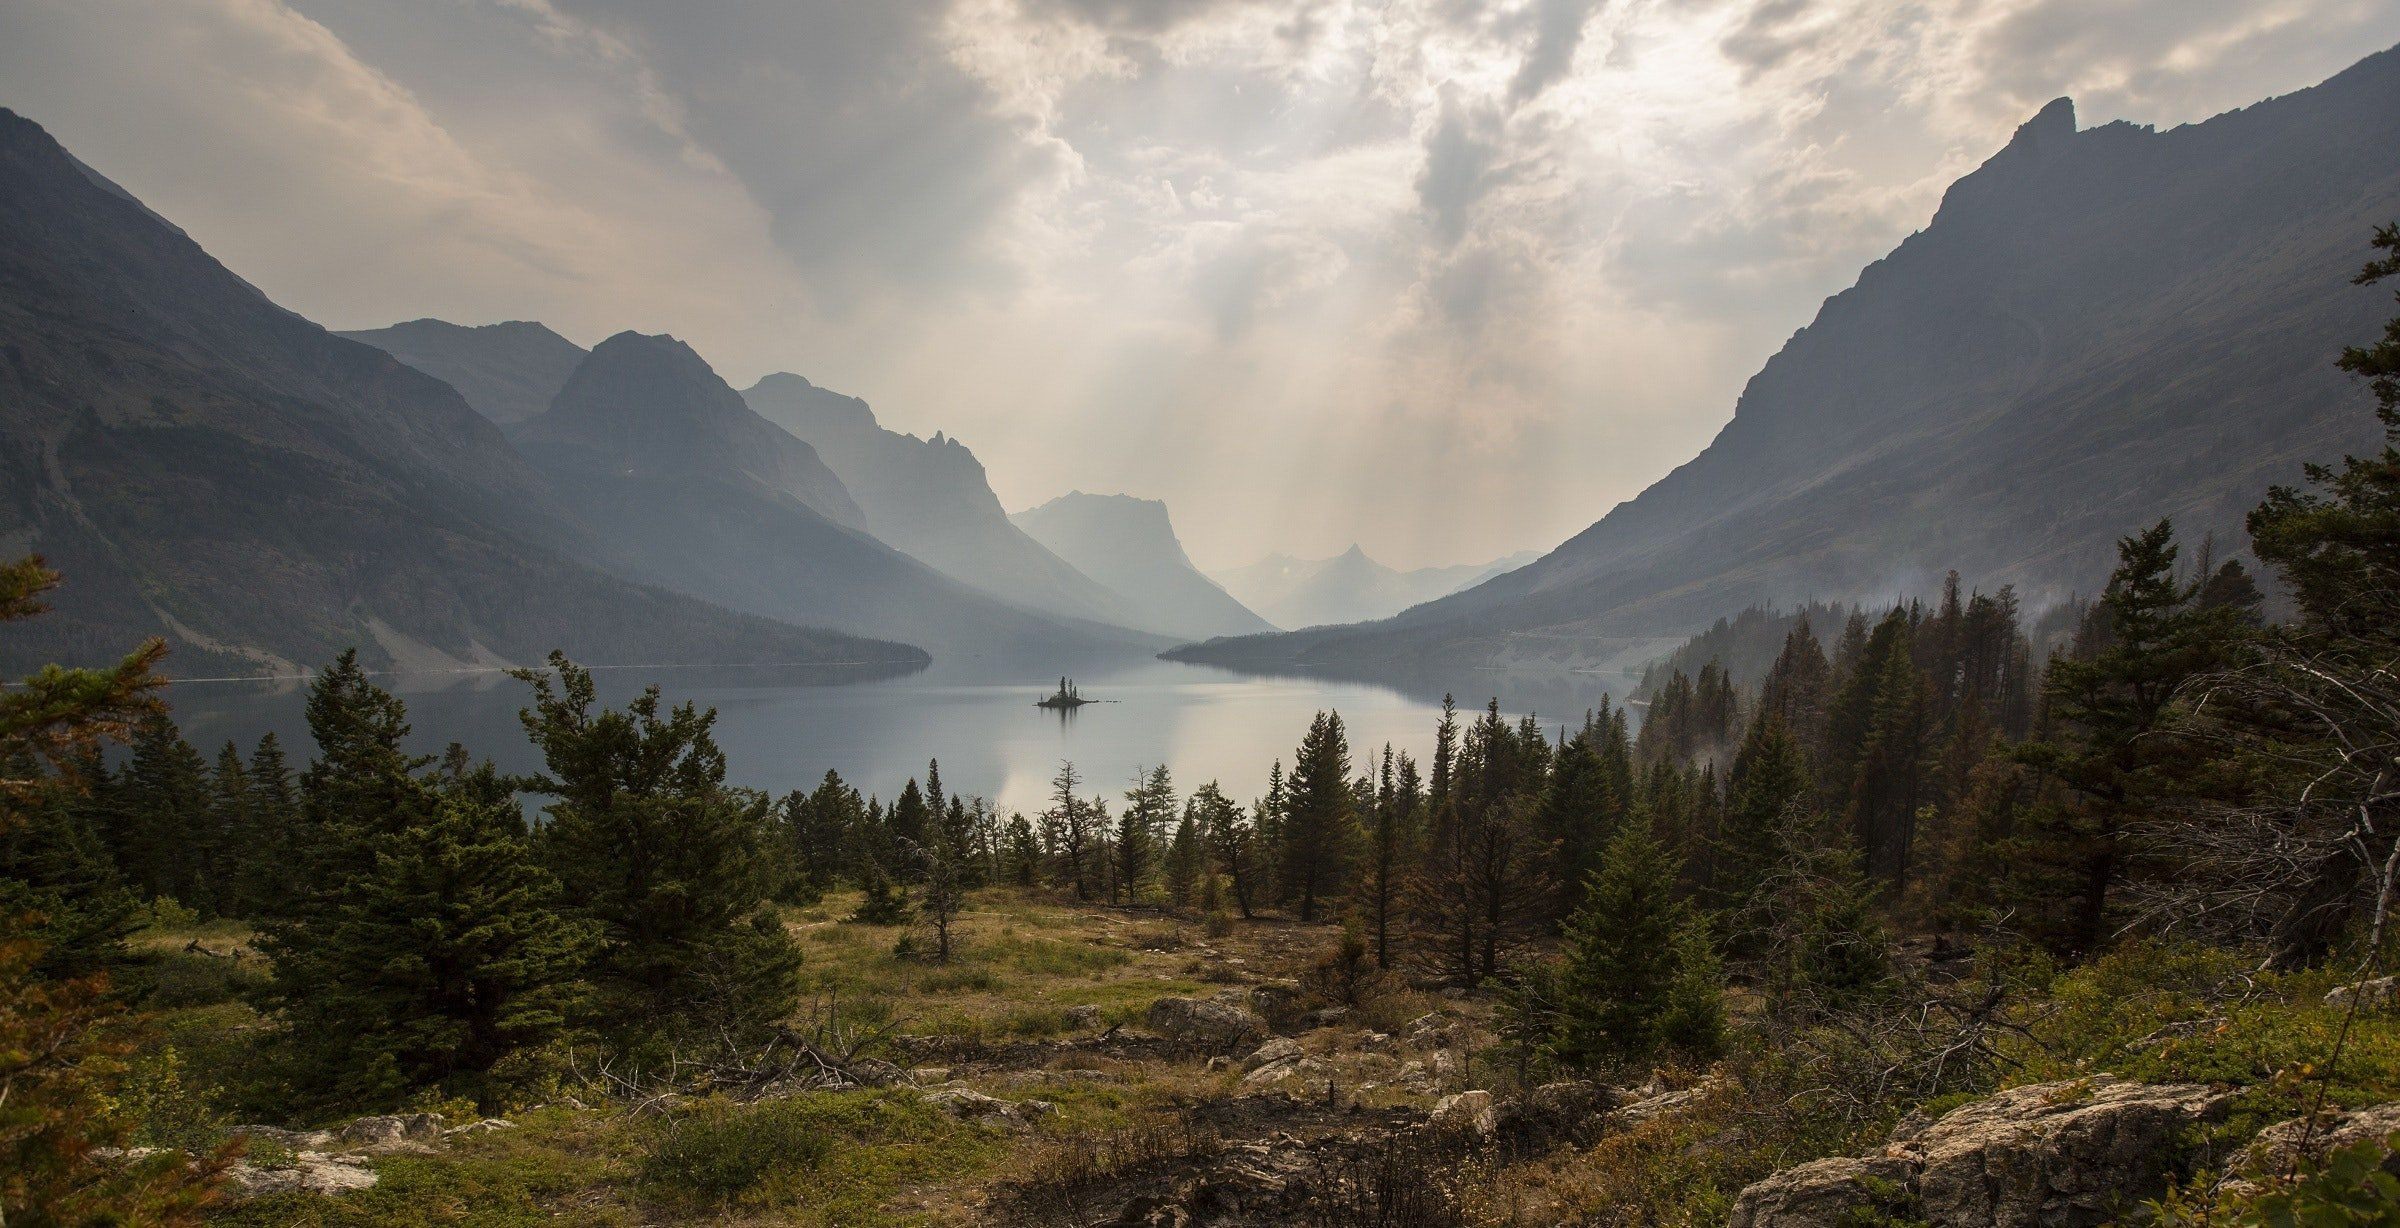 There's something special about the mountains here in Montana   Source: Pexels